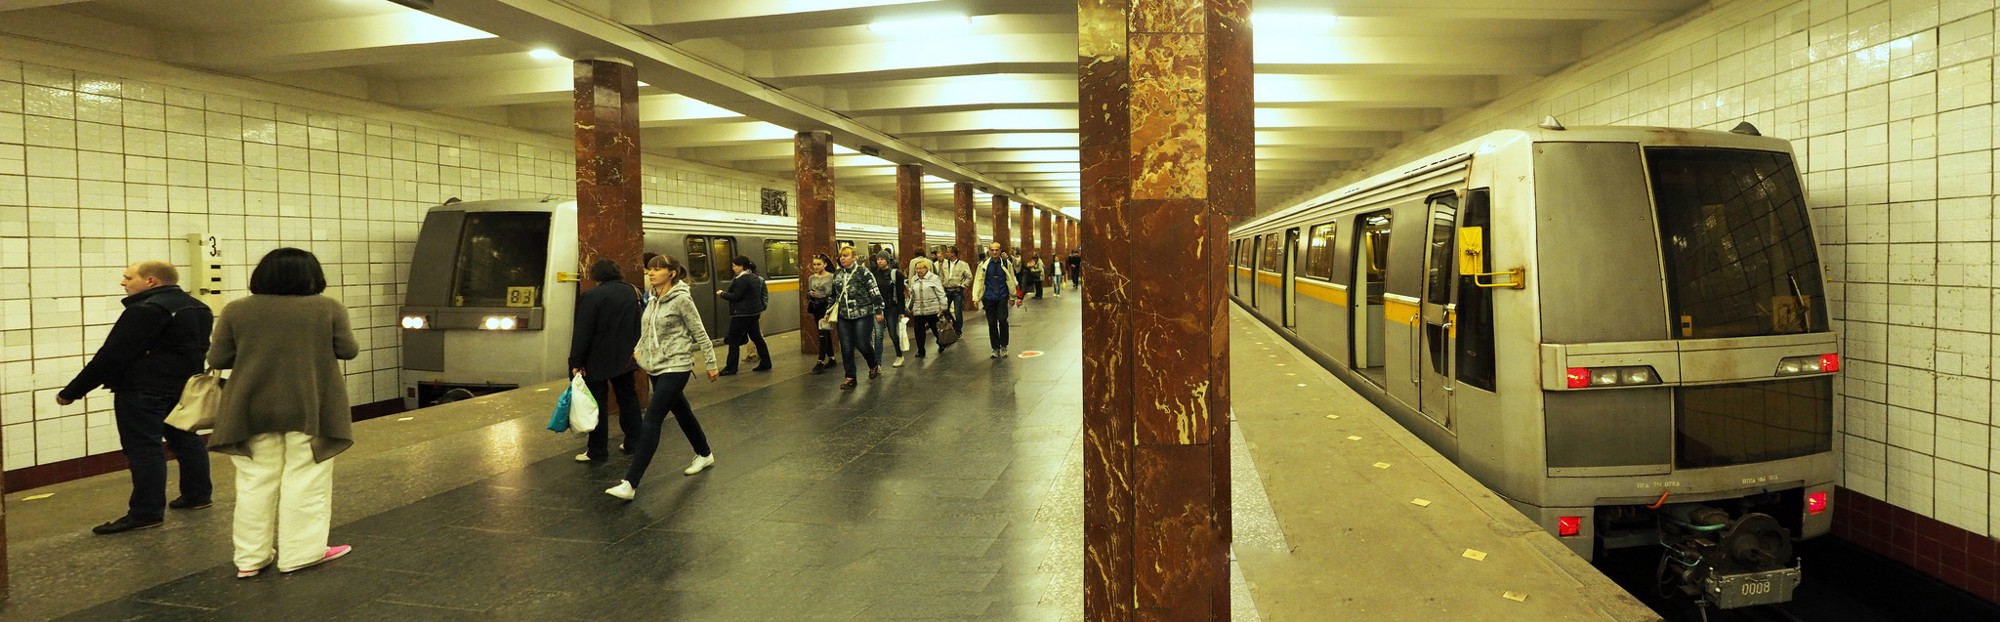 Moscow Metro, 83, Parade of trains 56